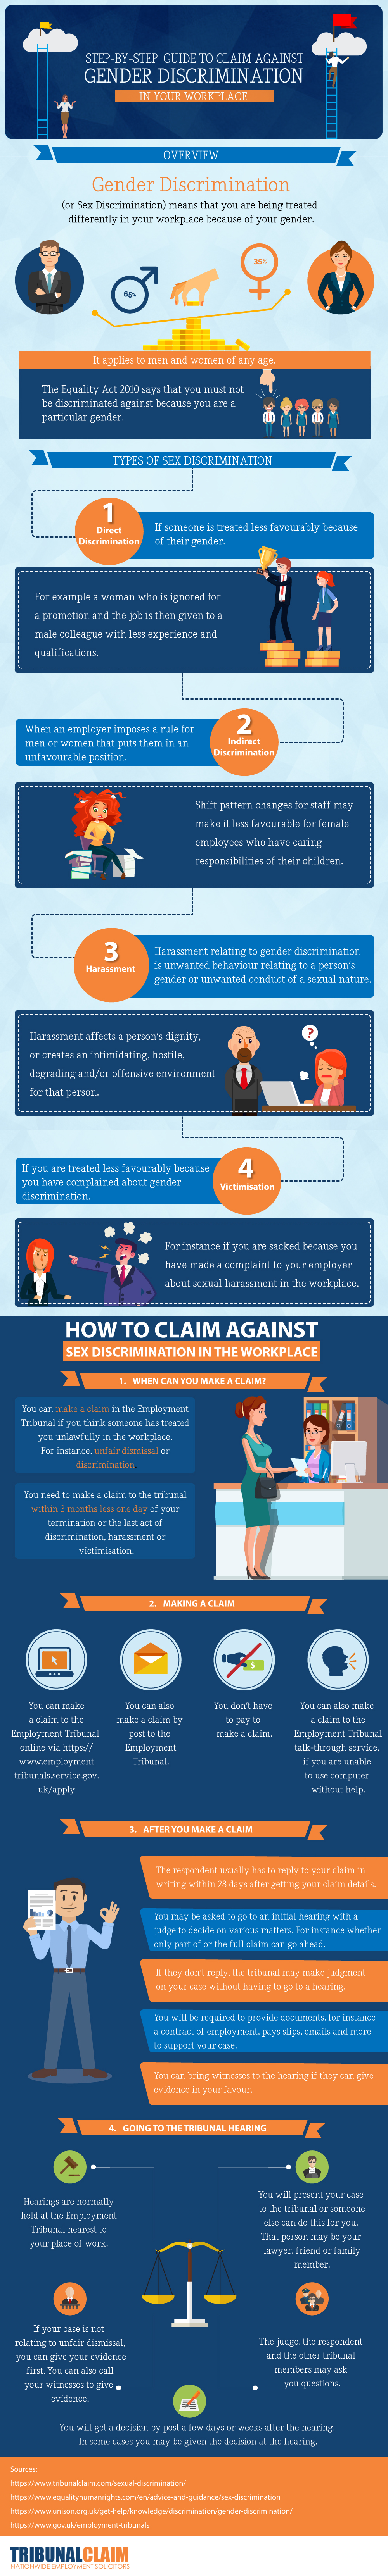 Guide to Claim against Gender Discrimination in Your Workplace